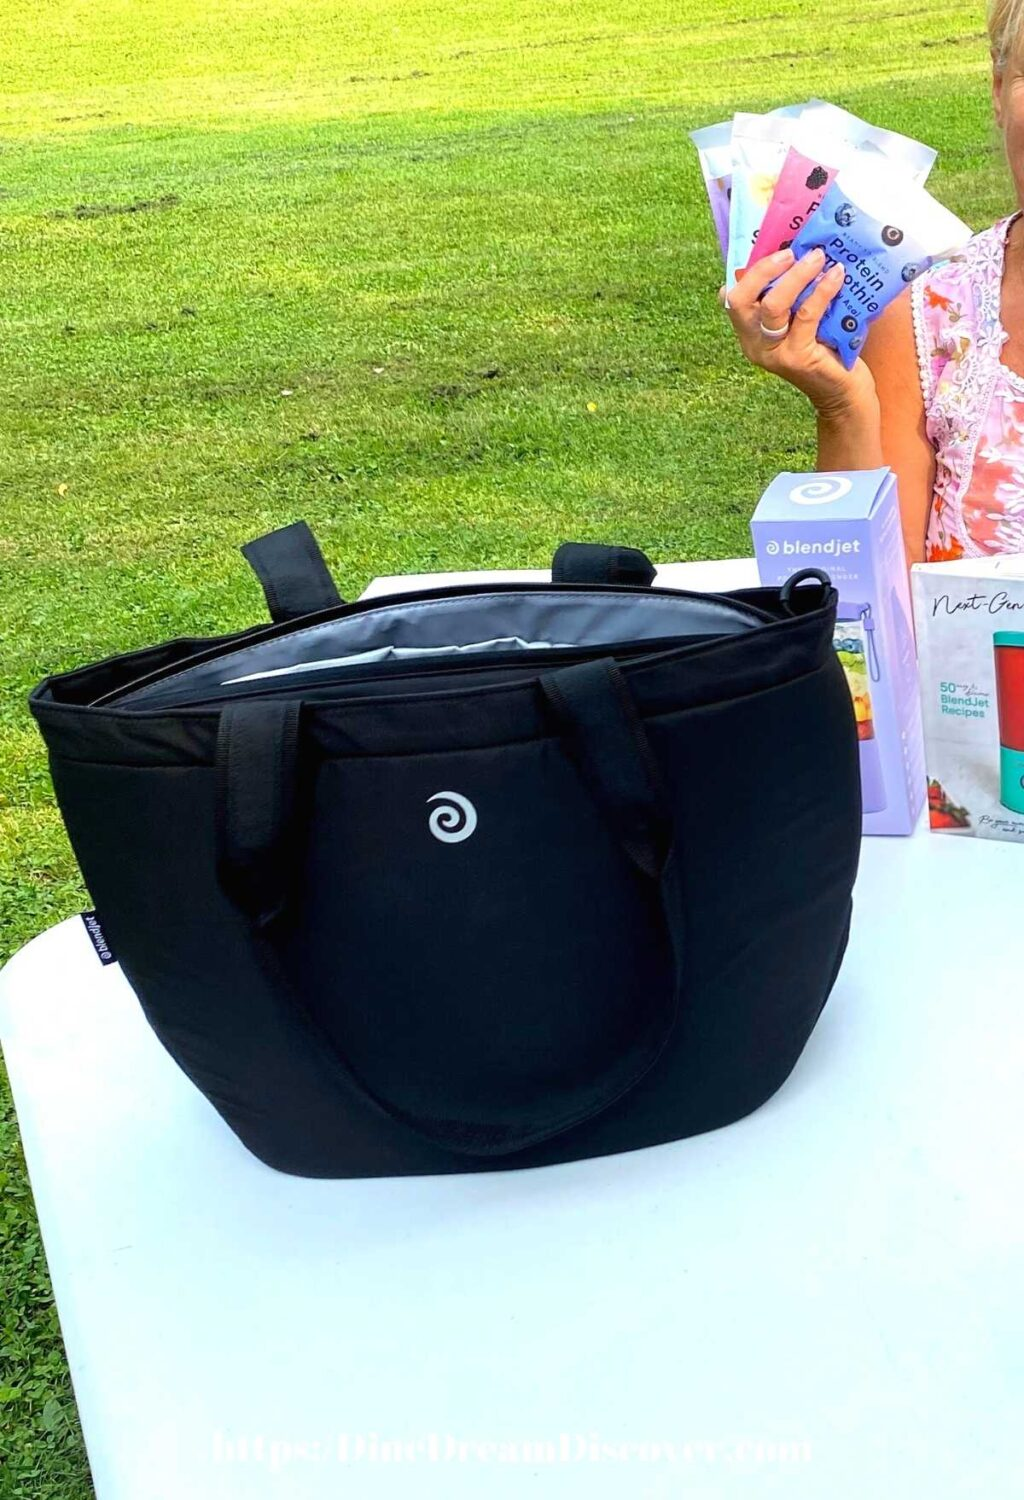 JetSetter Insulated Tote